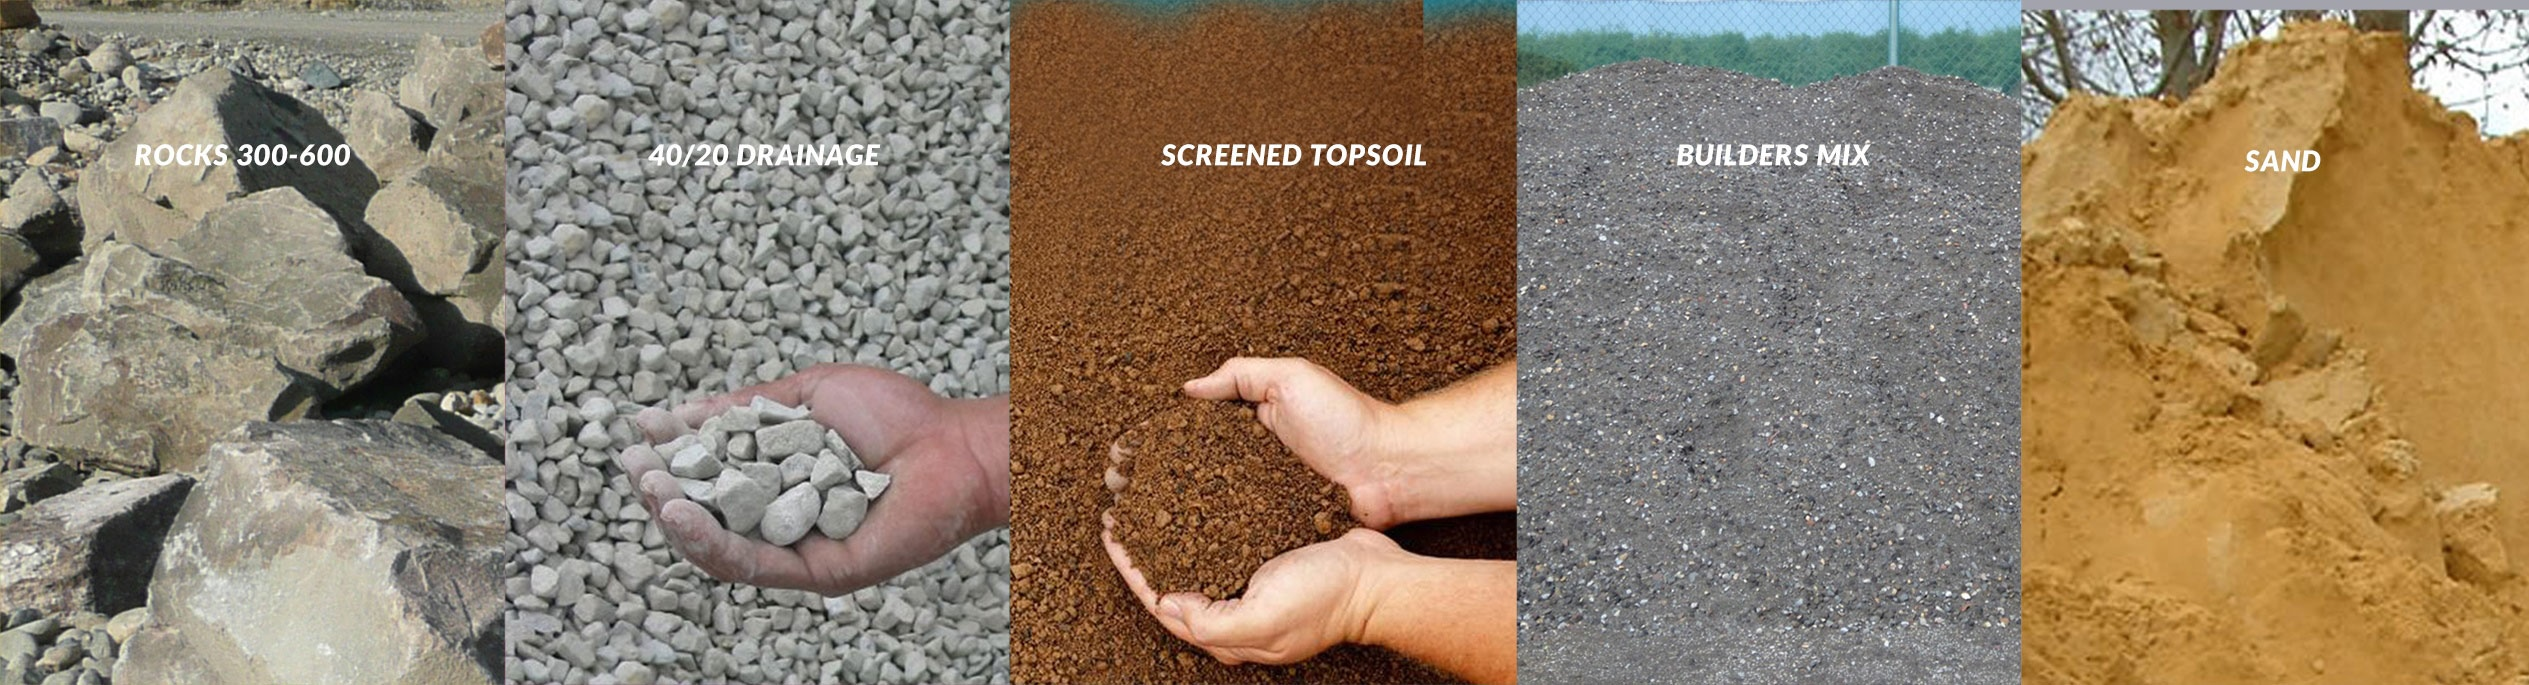 Graded metal aggregates soils for your next job